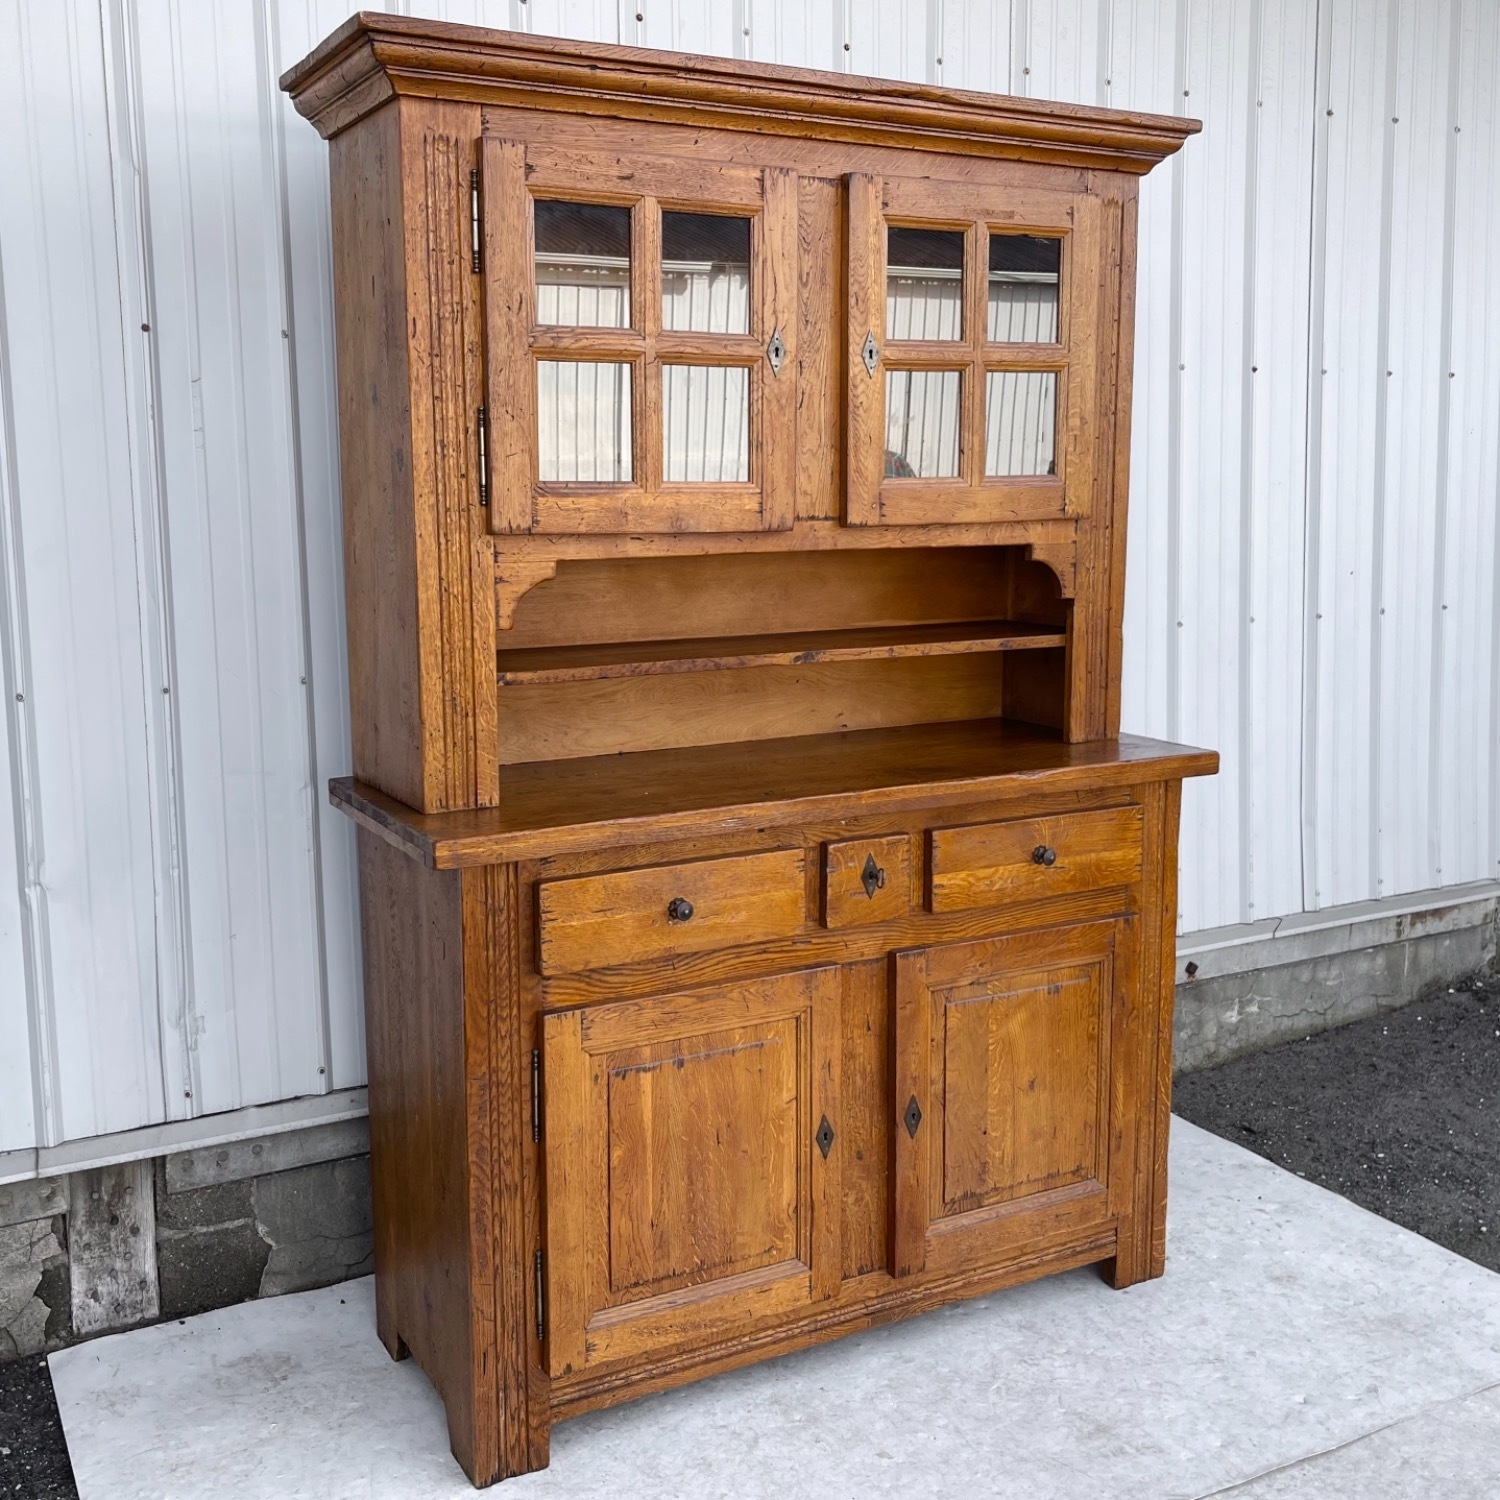 Antique Country Style Cupboard With Topper - image-0